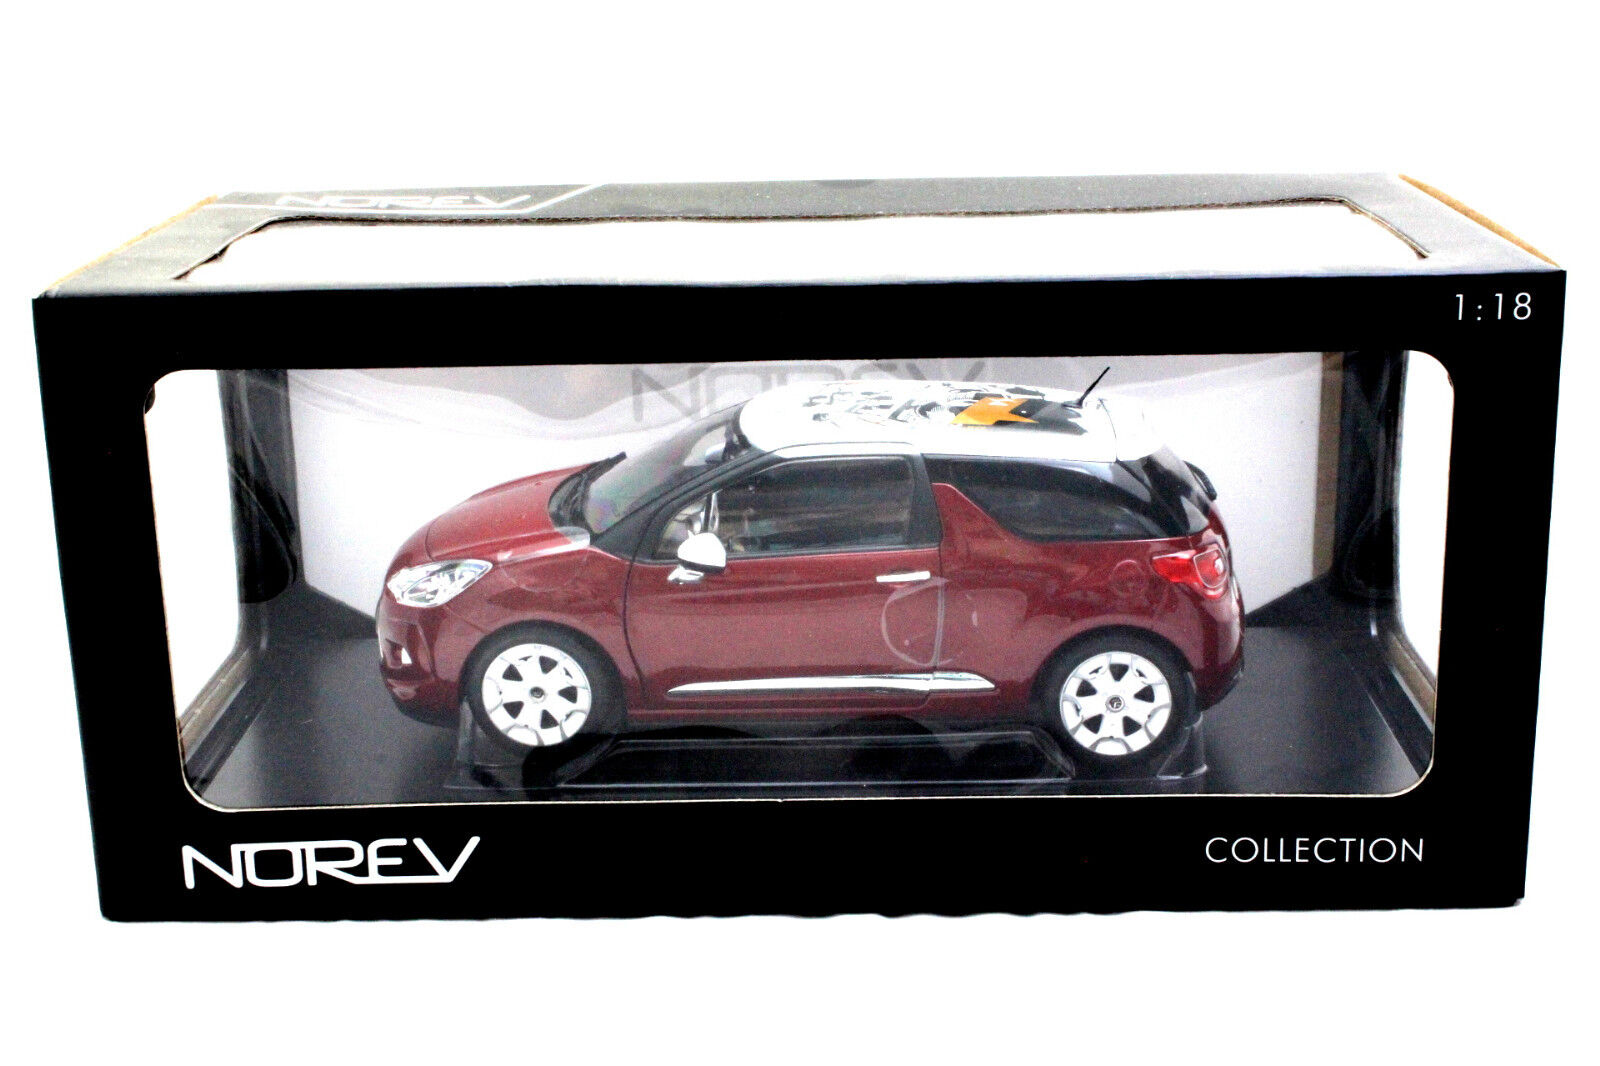 NOREV 2010 CITROEN DS3 SANGUINE RED WITH WHITE ROOF 1 18 DIECAST CAR